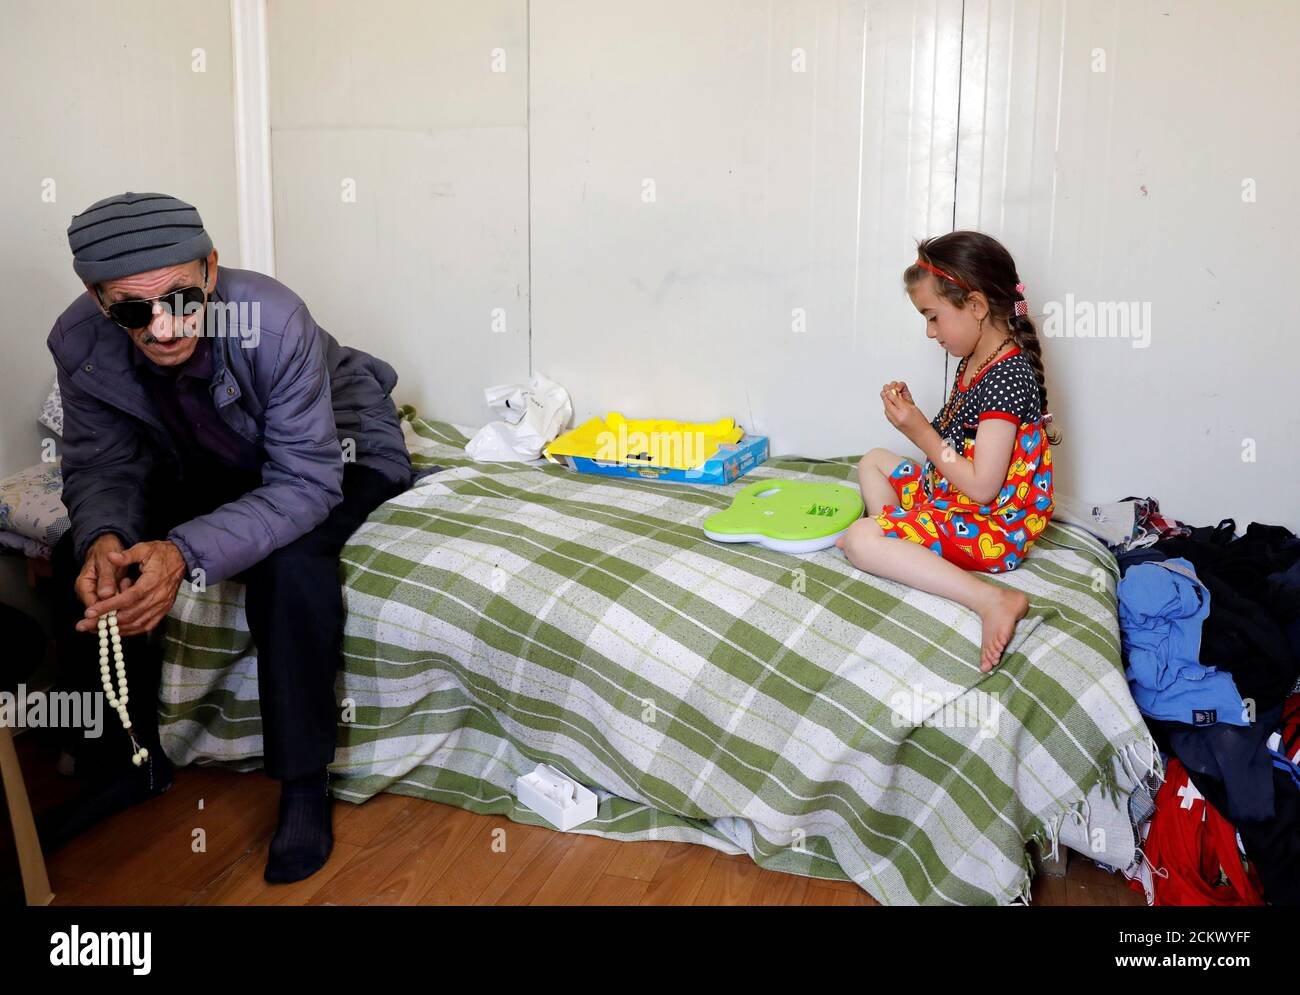 Iraqi Christina Ezzo Abada, a former hostage of Islamic State militants for three years, plays near her blind father after she reunited with her family in a cramped home at a refugee camp in Erbil, Iraq June 10, 2017. REUTERS/Erik De Castro Stock Photo